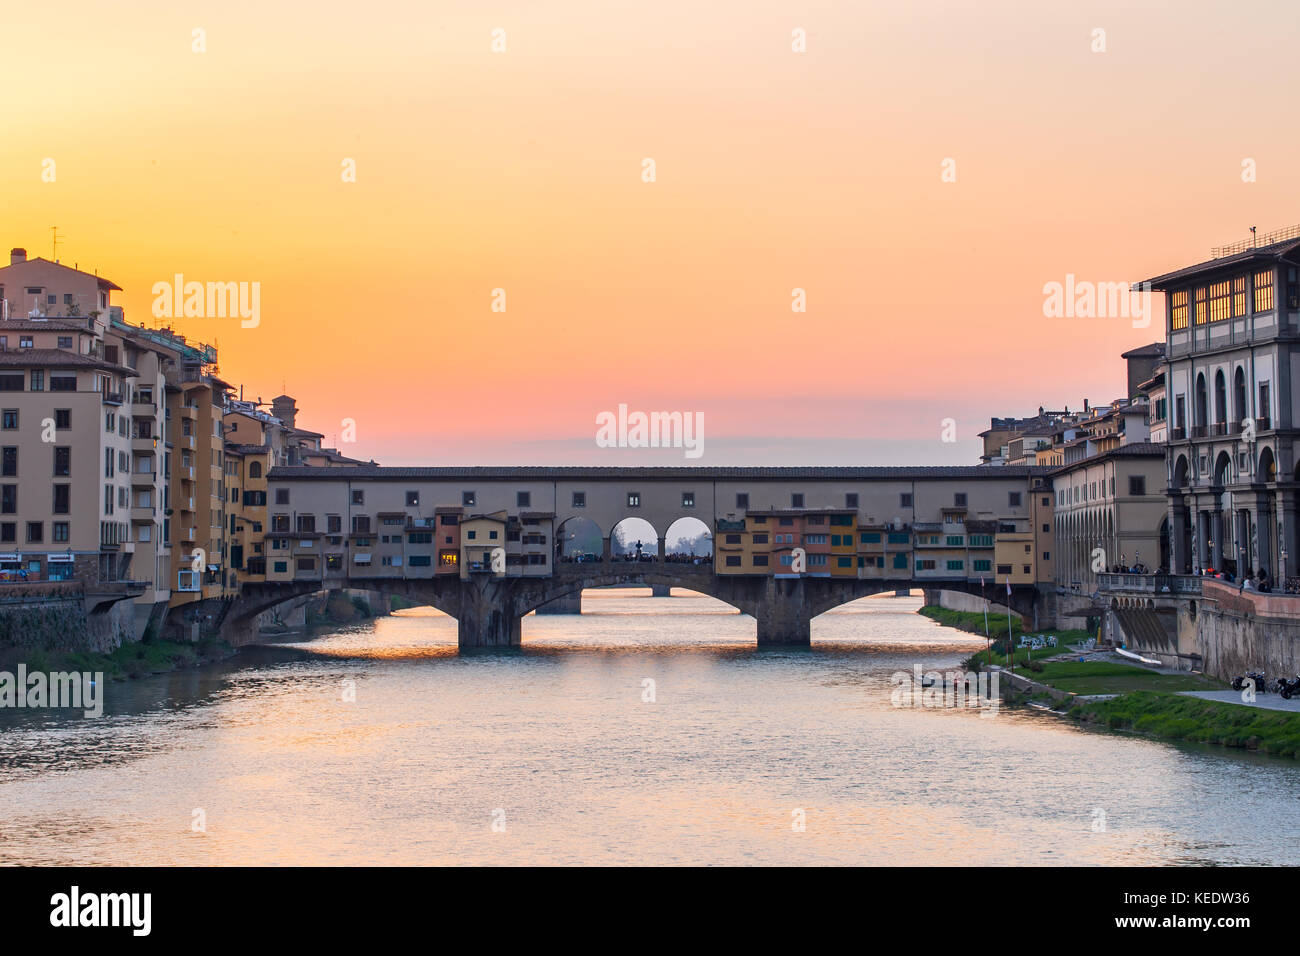 Sunset view at Ponte Vecchio the old bridge in Florence, Tuscany, Italy. - Stock Image